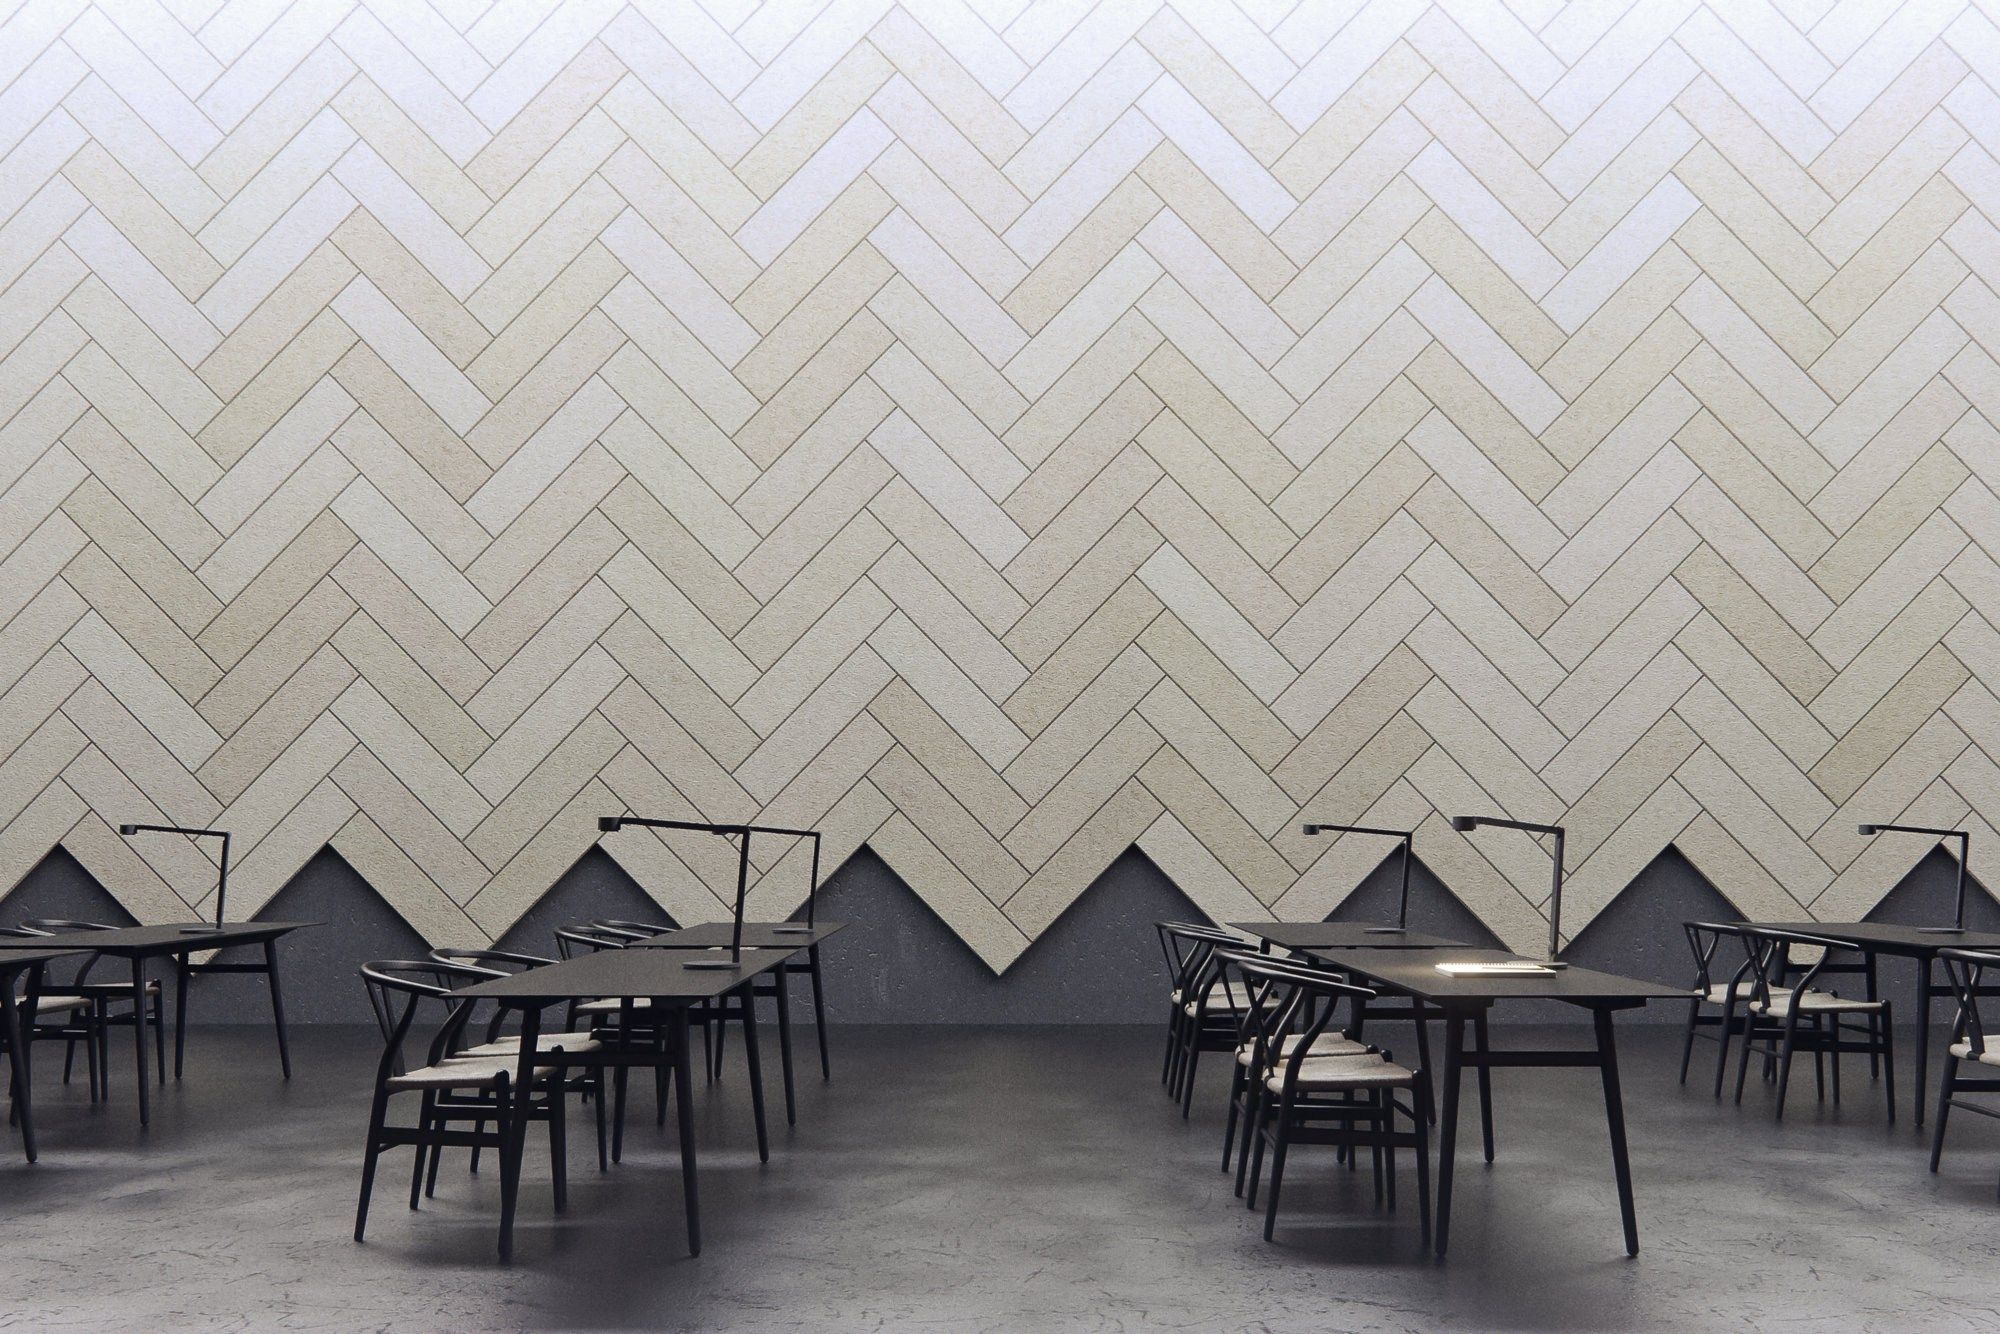 Decorative acoustical panels baux acoustic tile plank by baux design form us with love walls - Decorative acoustic wall panels ...